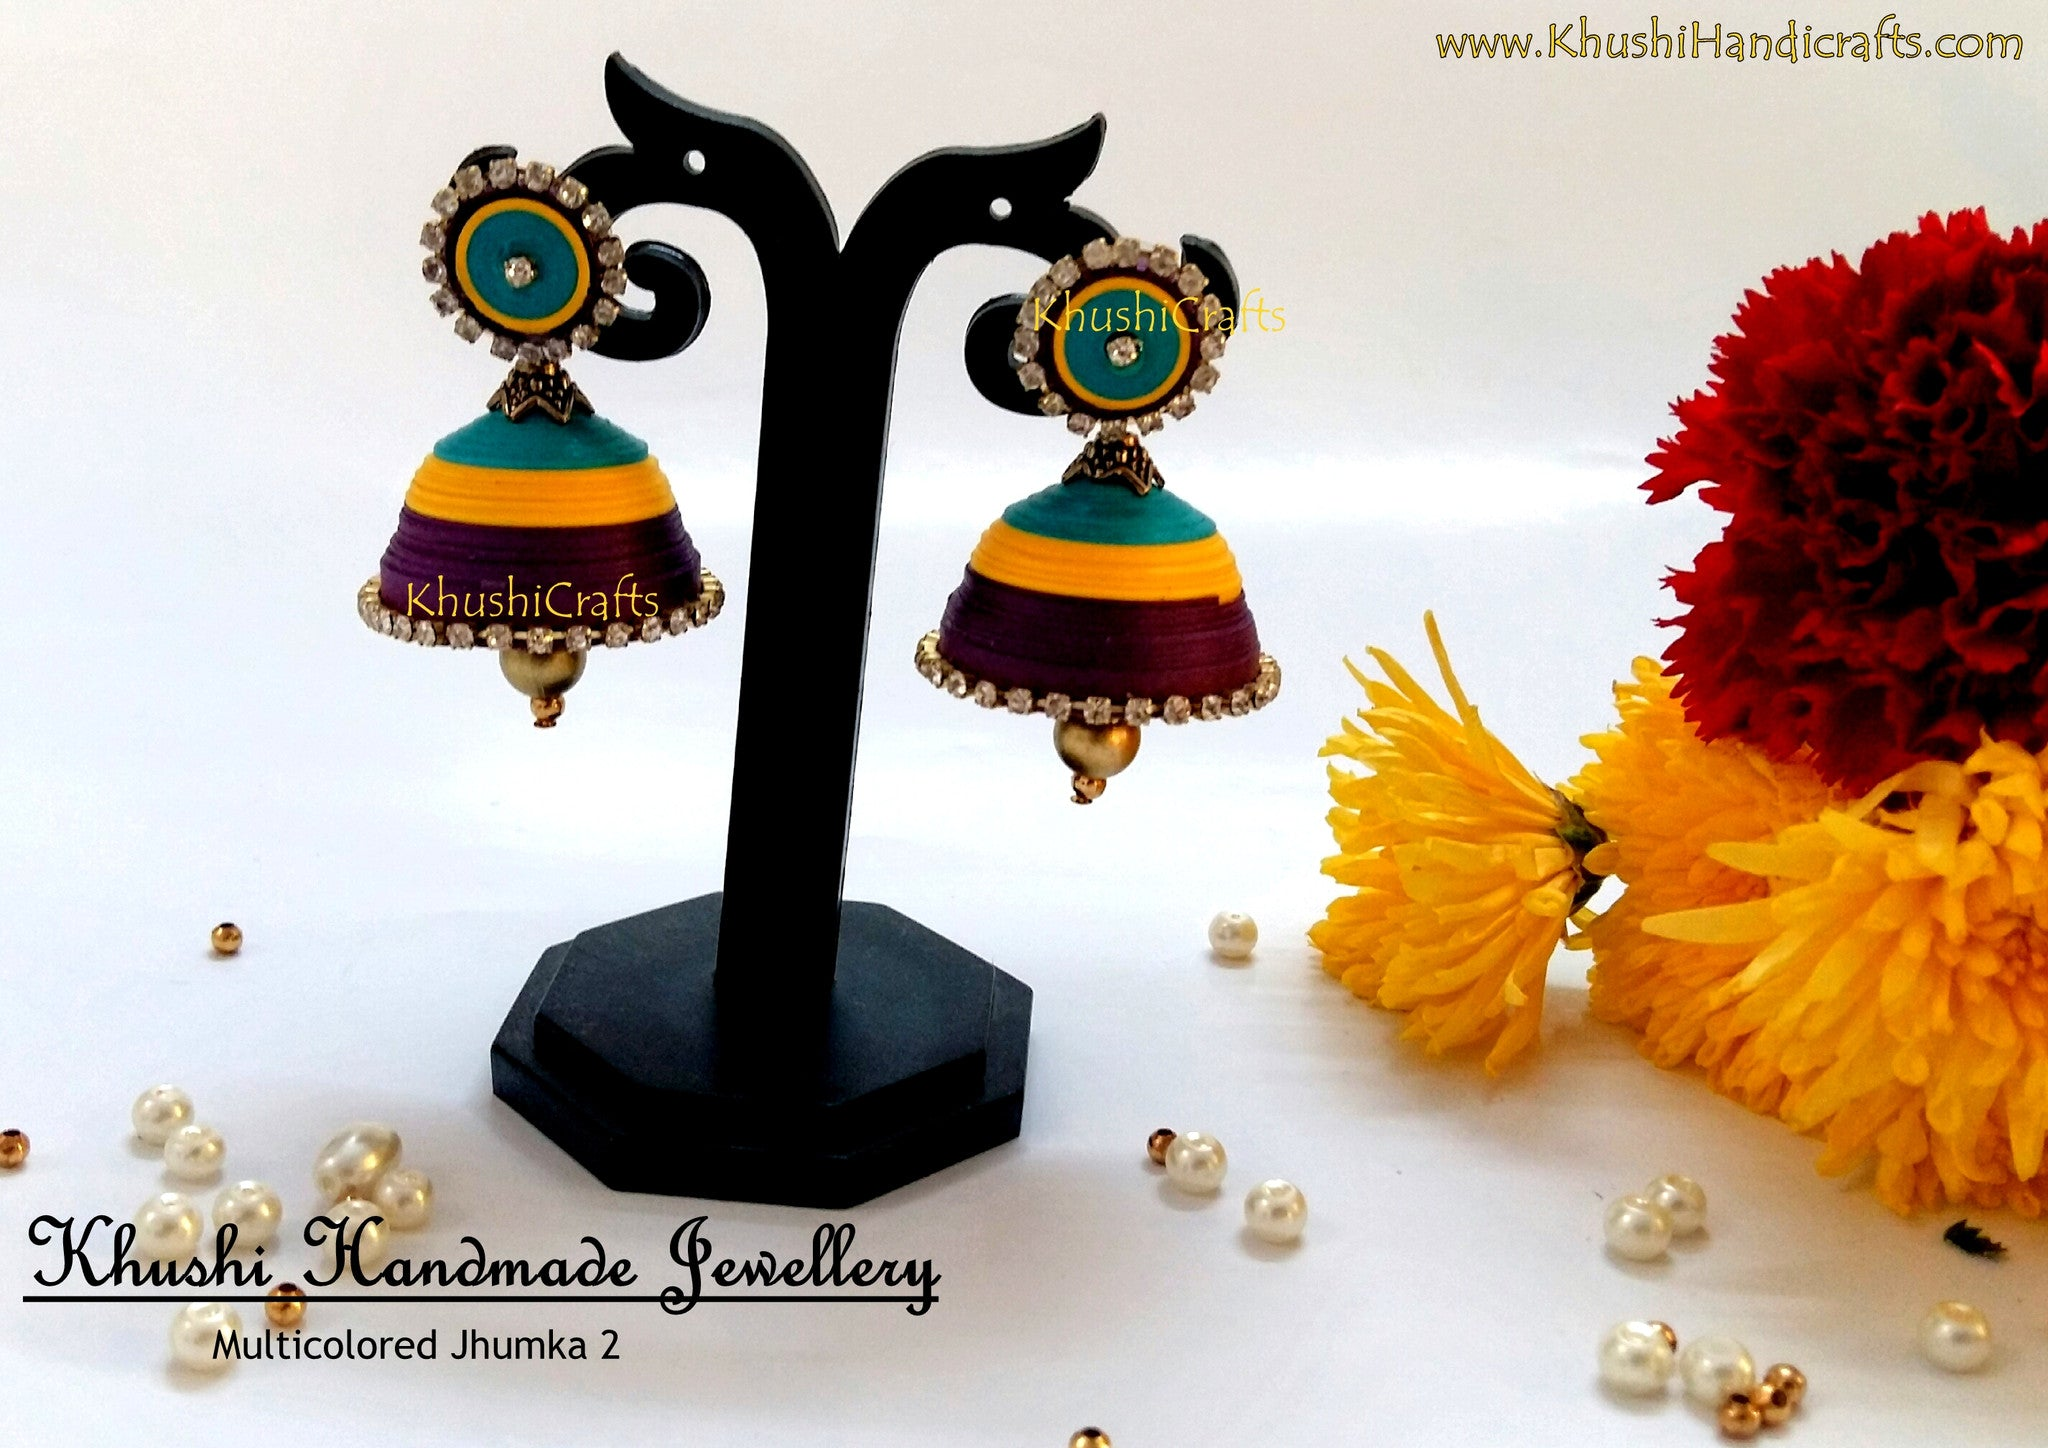 Multicolored Jhumka 2 - Khushi Handmade Jewellery